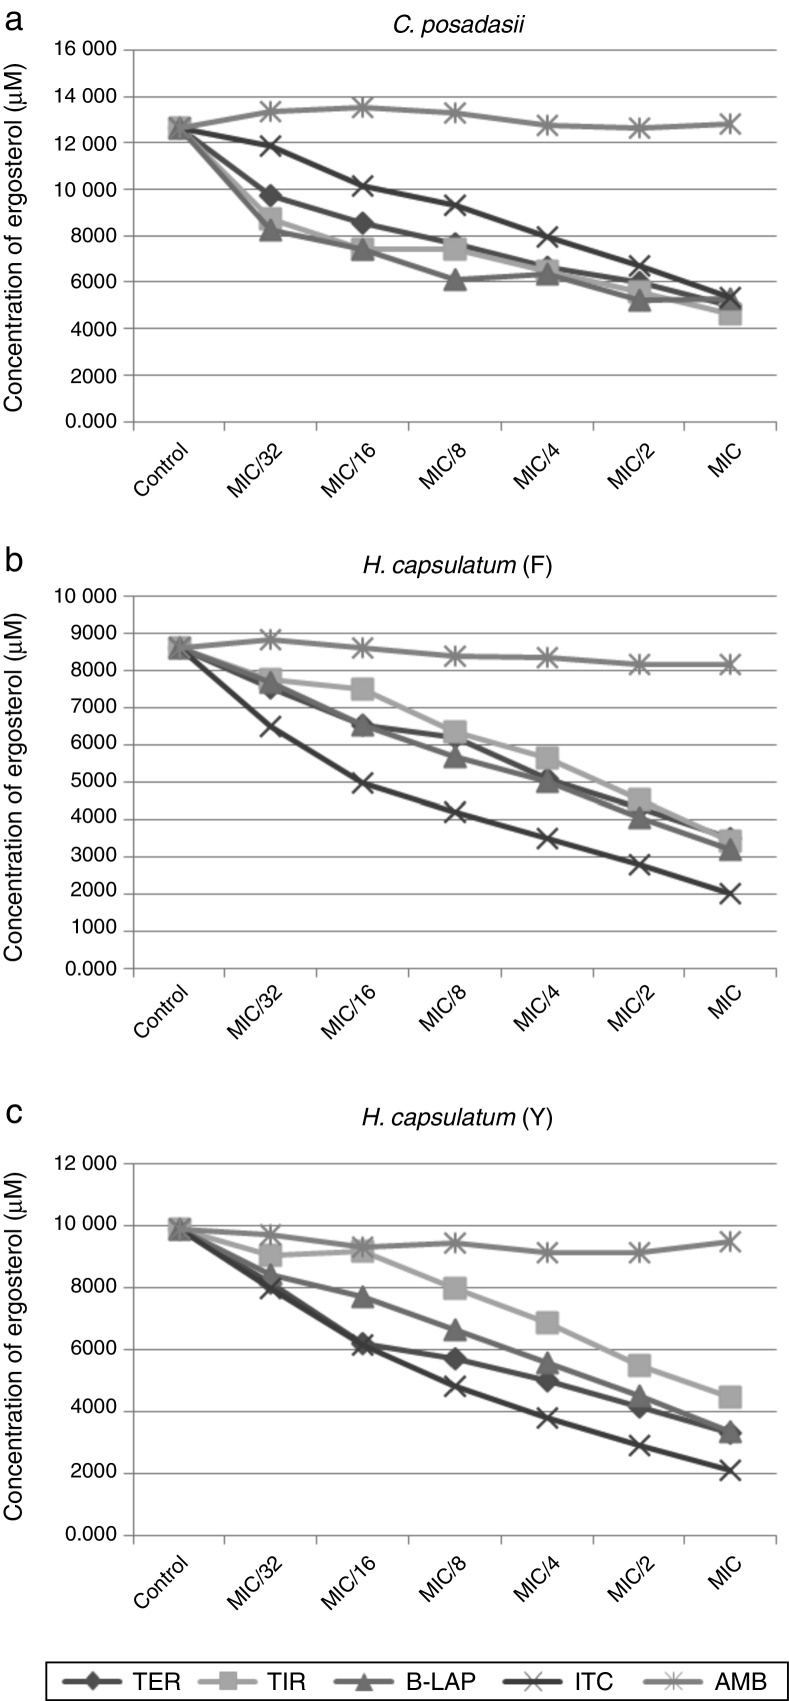 Quantification of ergosterol from the ten strains of Coccidioides posadasii (2a), eight filamentous (F) strains of Histoplasma capsulatum (2b), and eight yeast (Y) strain of H. capsulatum (2c) after exposure to sub-inhibitory concentrations of terpinen-4-ol (TER), tyrosol (TIR), β-lapachone (B-LAP), itraconazole (ITC, control drug), and amphotericin B (AMB, control drug). These values represent the average results for all strains tested for each species. Control: fungal growth control without drug.